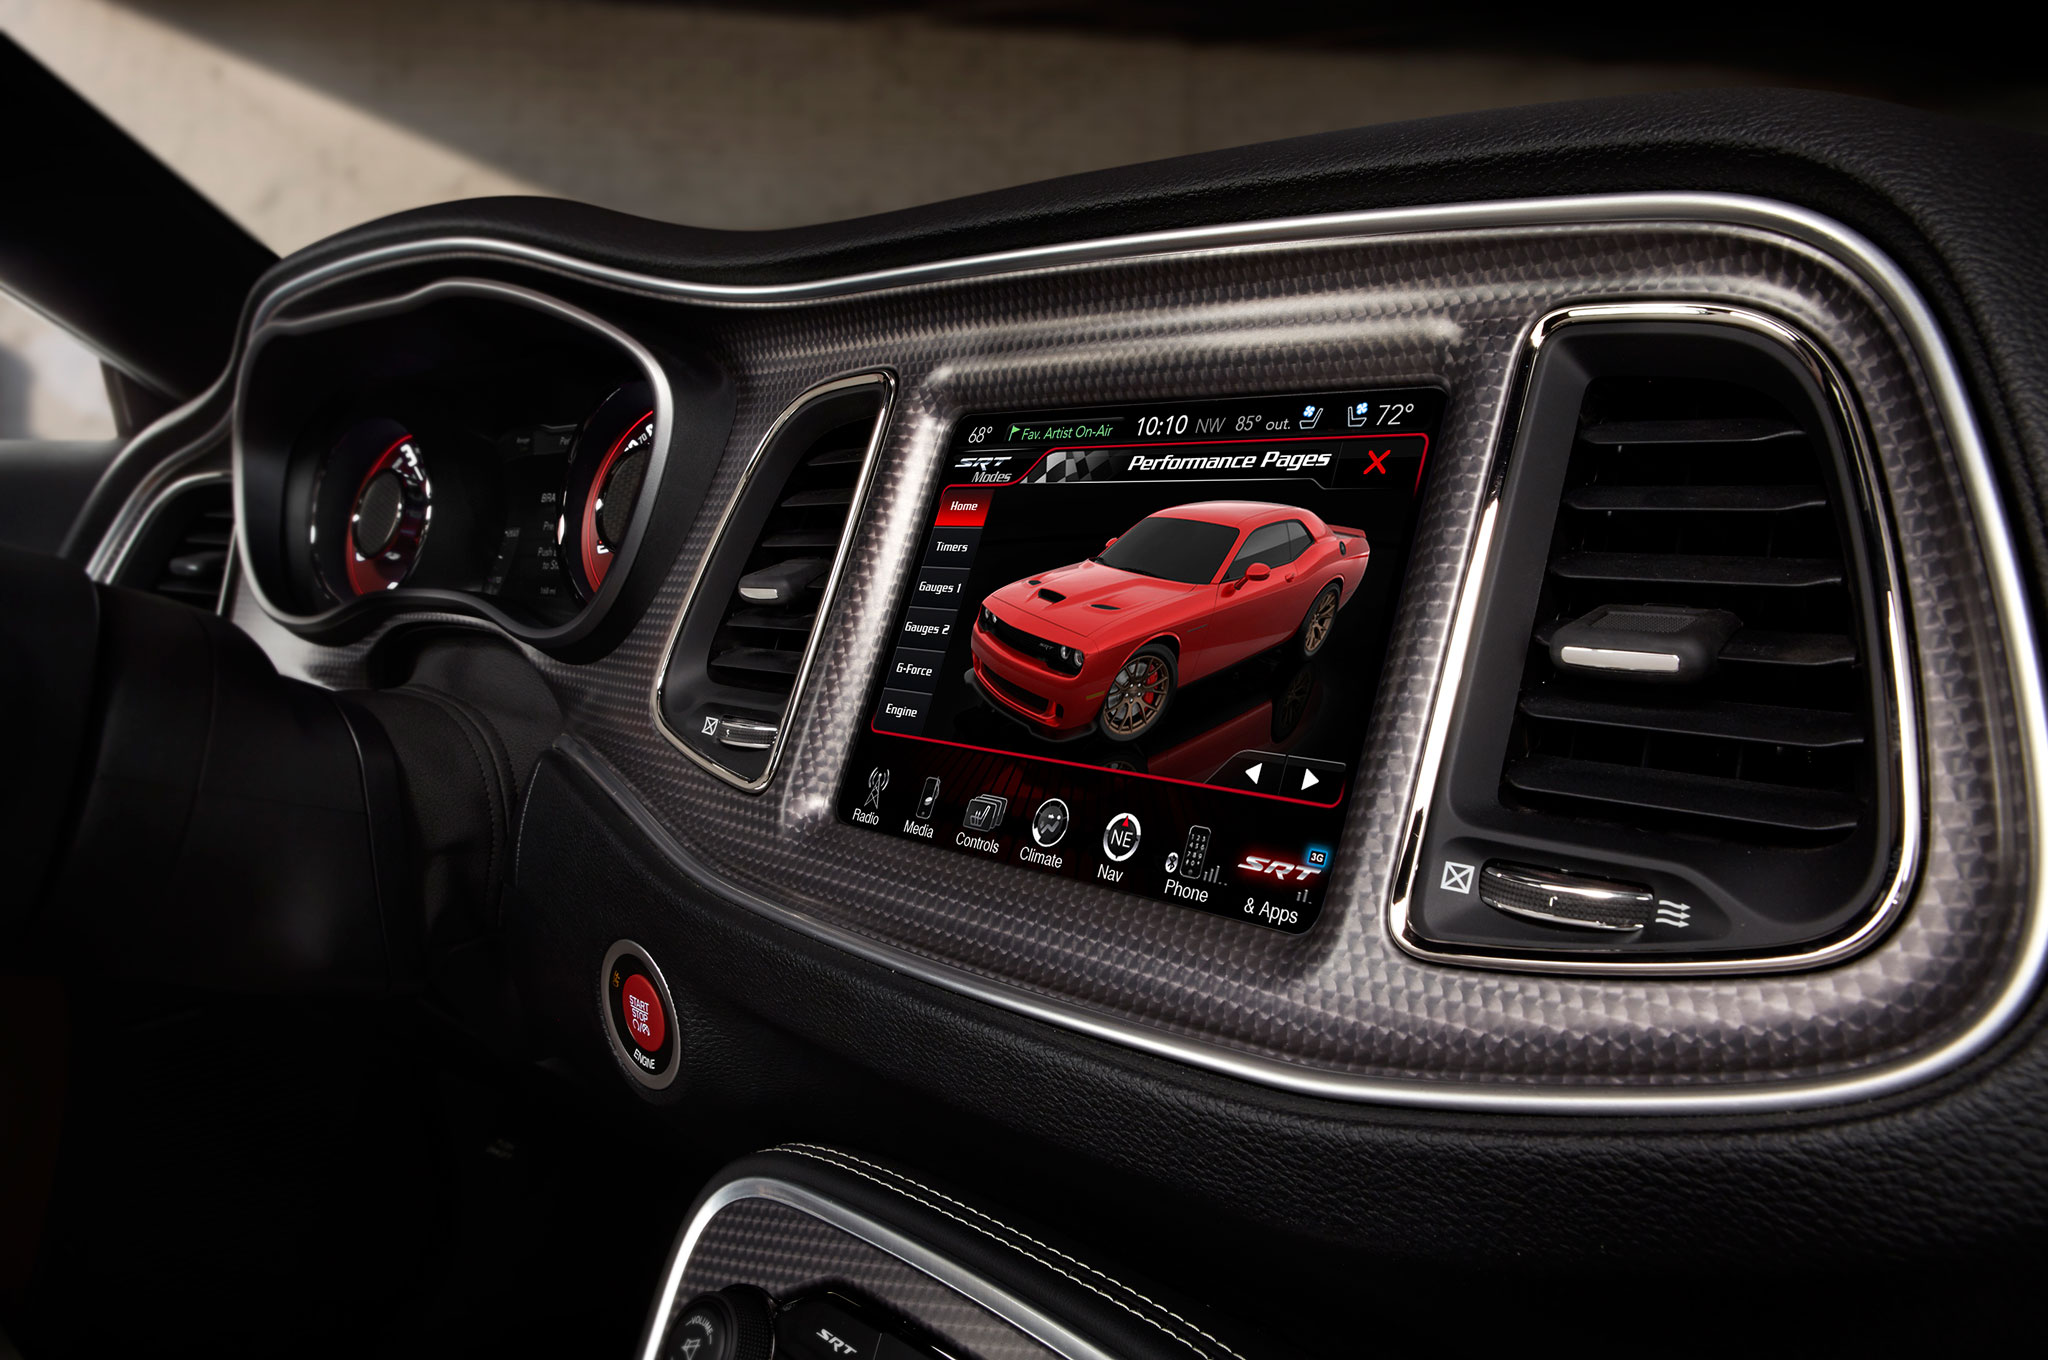 2015 Dodge Challenger Screen (Photo 35 of 39)